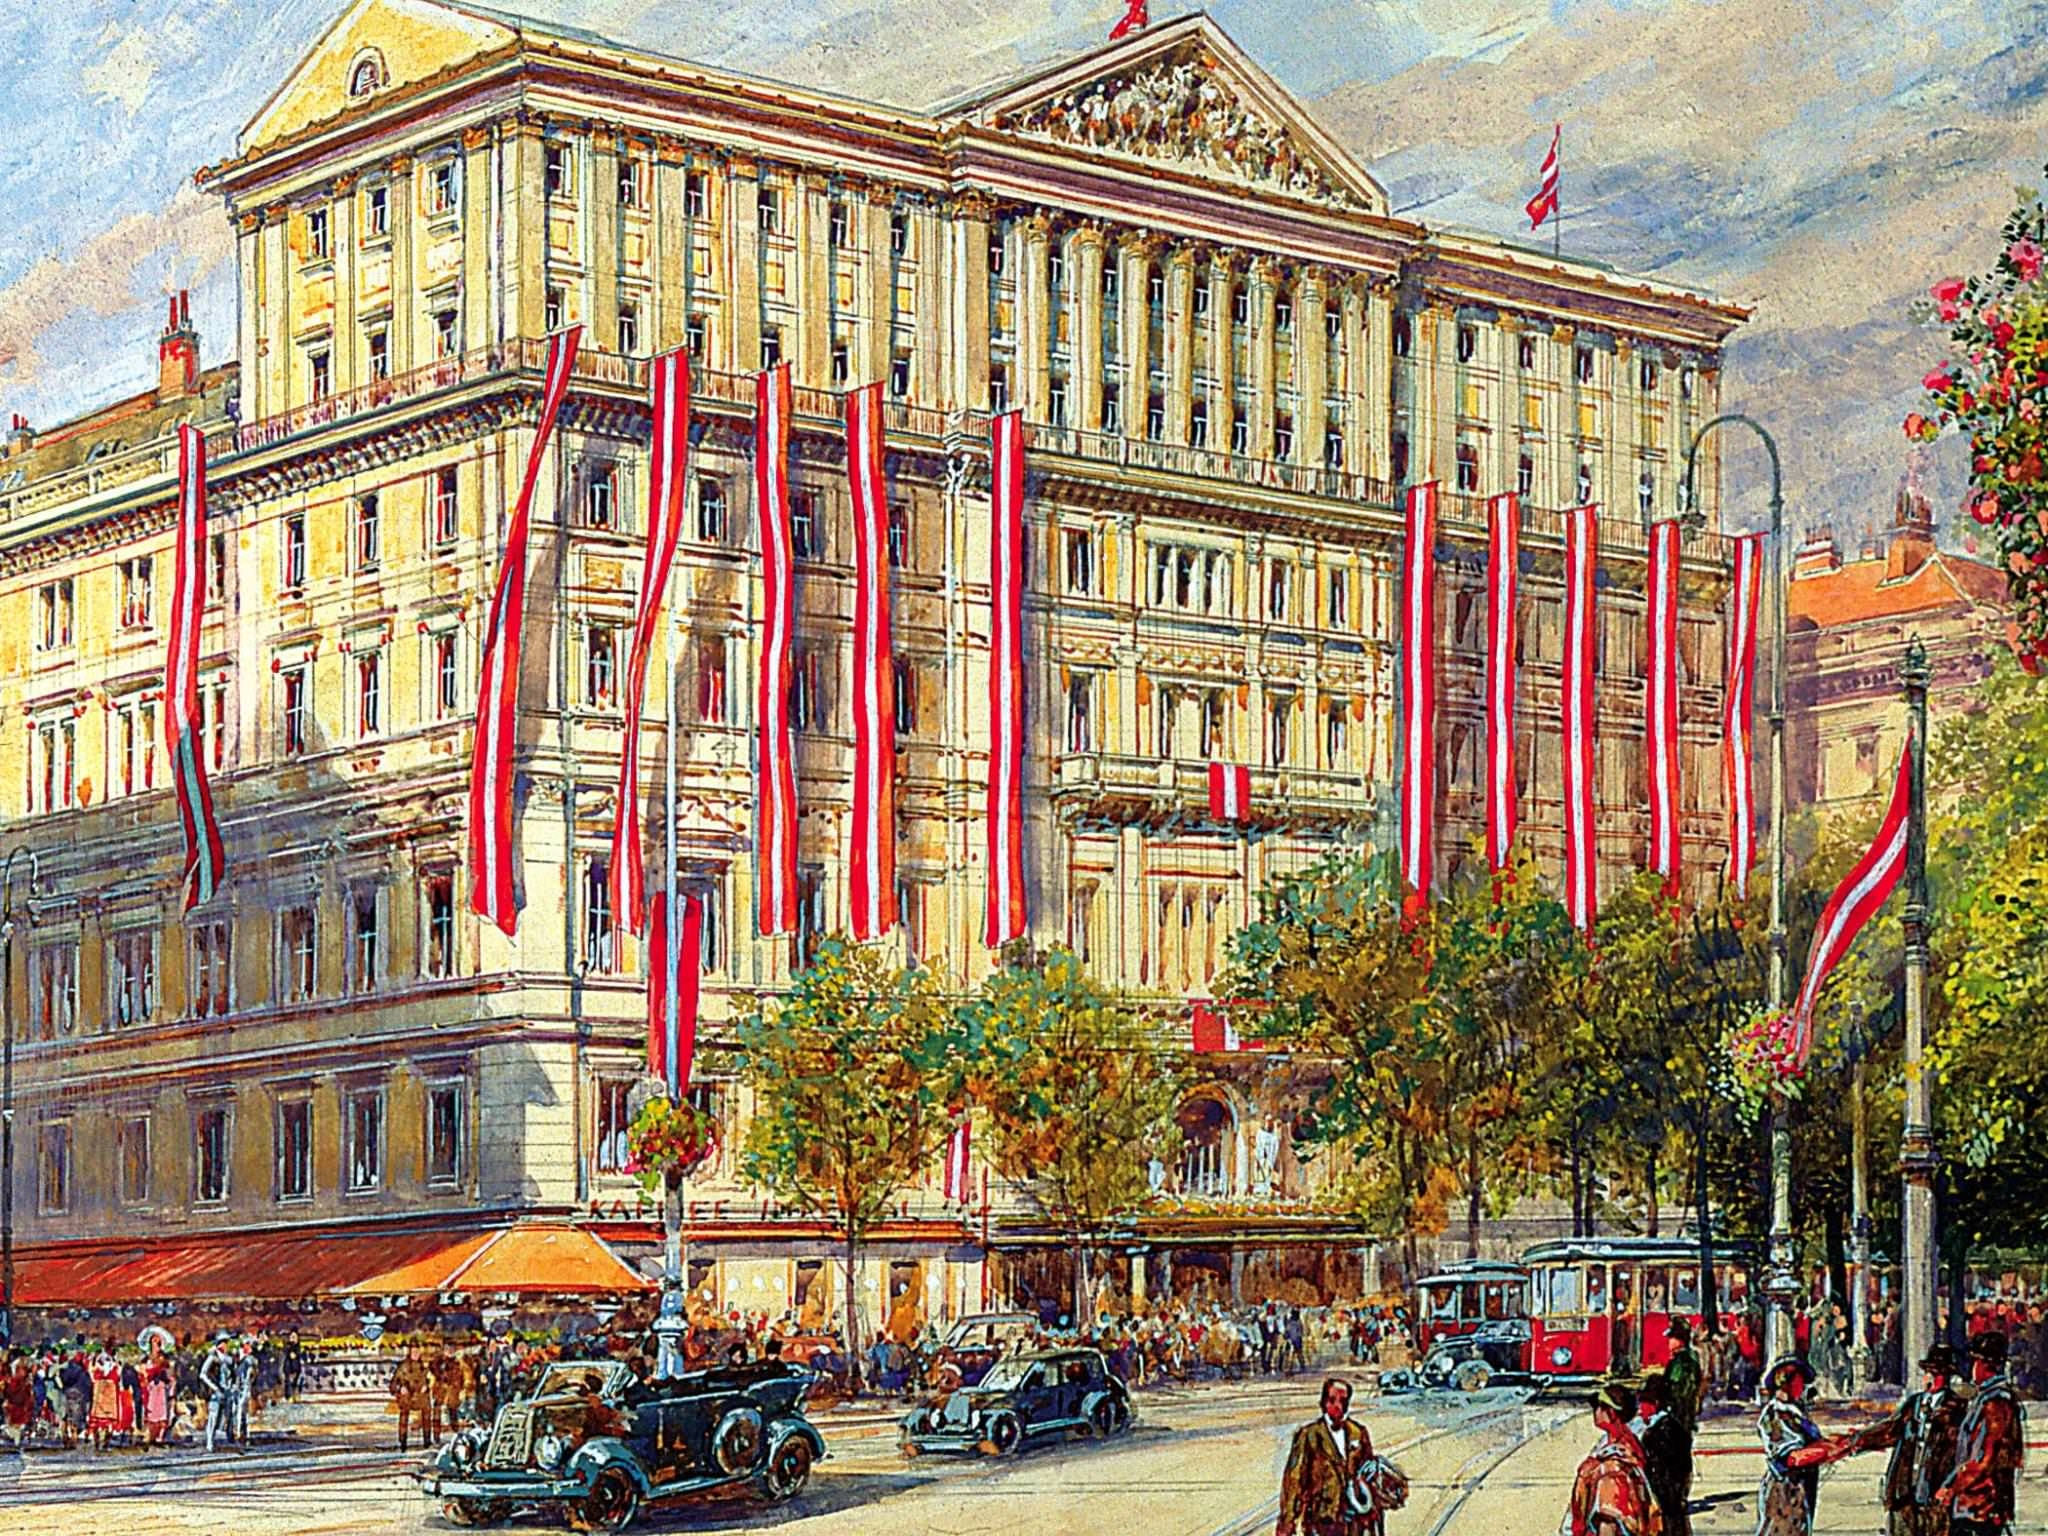 Imperial Hotel in Vienna